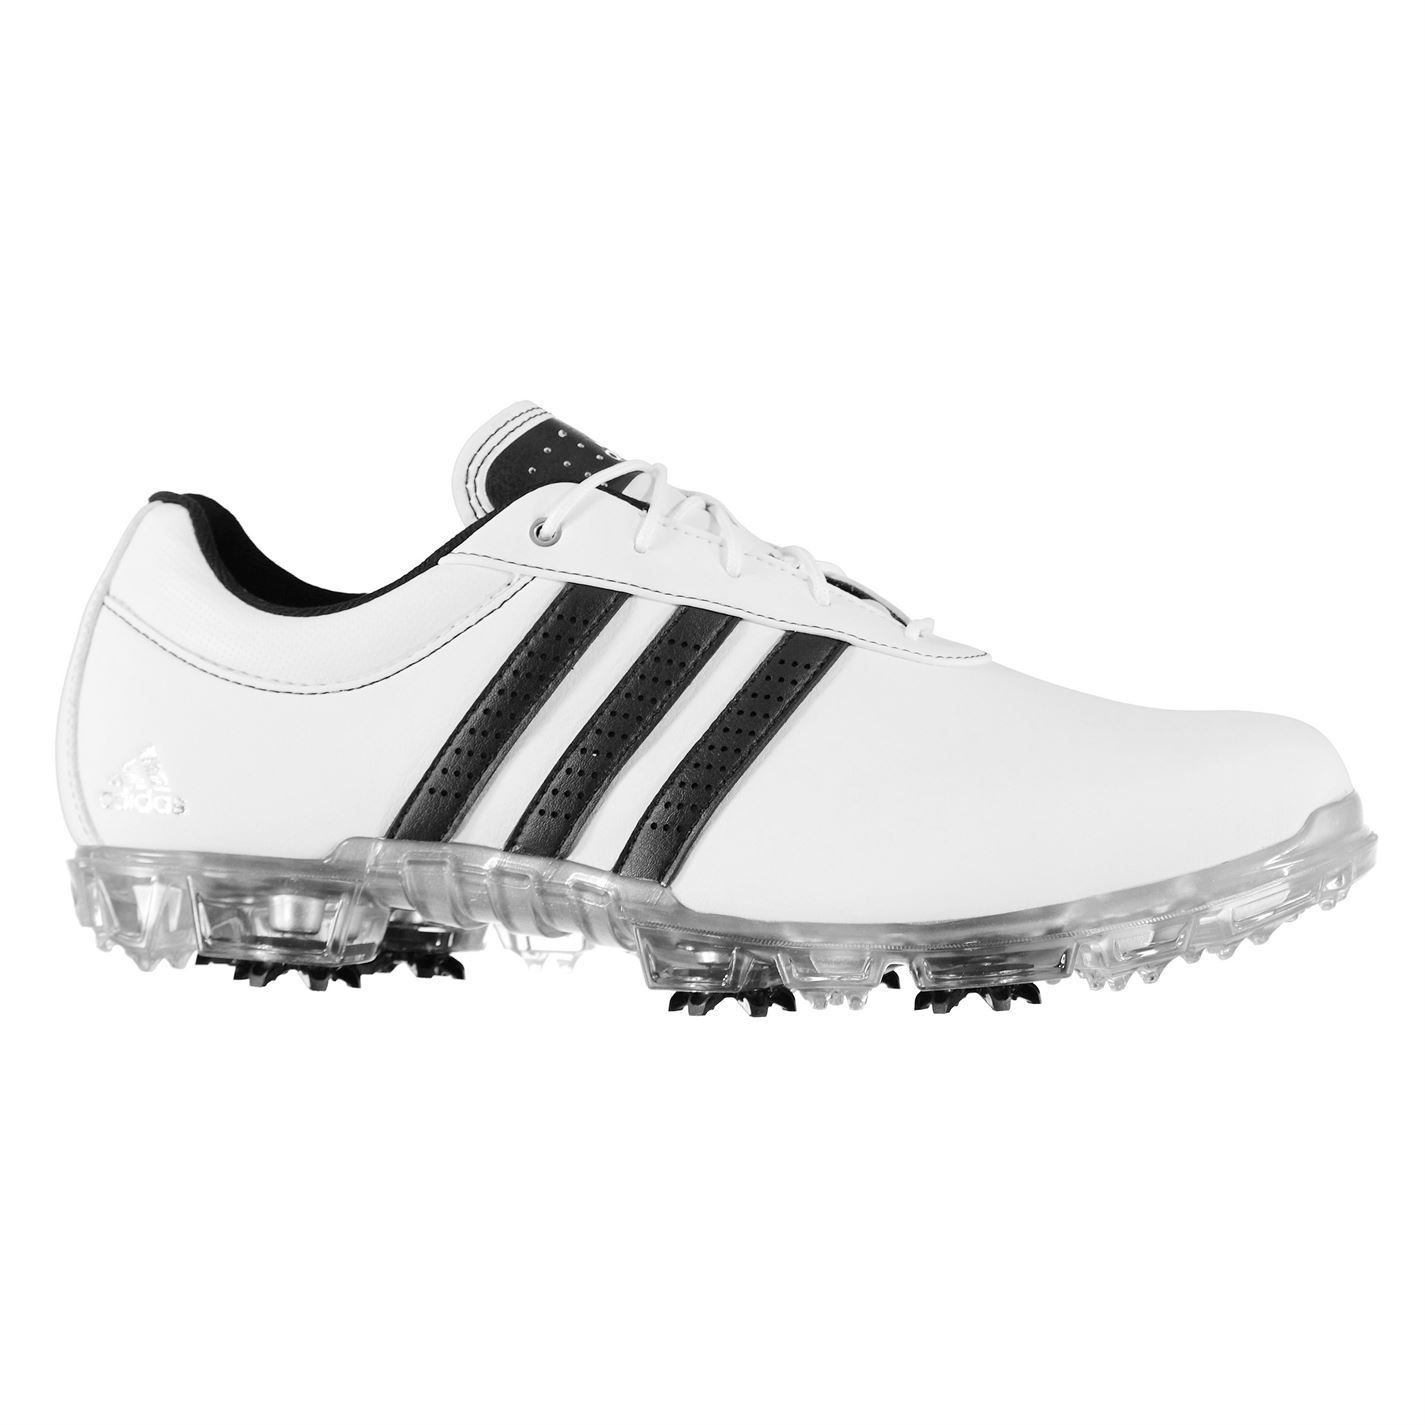 cd8048f6f35c ... adidas adipure Flex Golf Shoes Mens Spikes Footwear